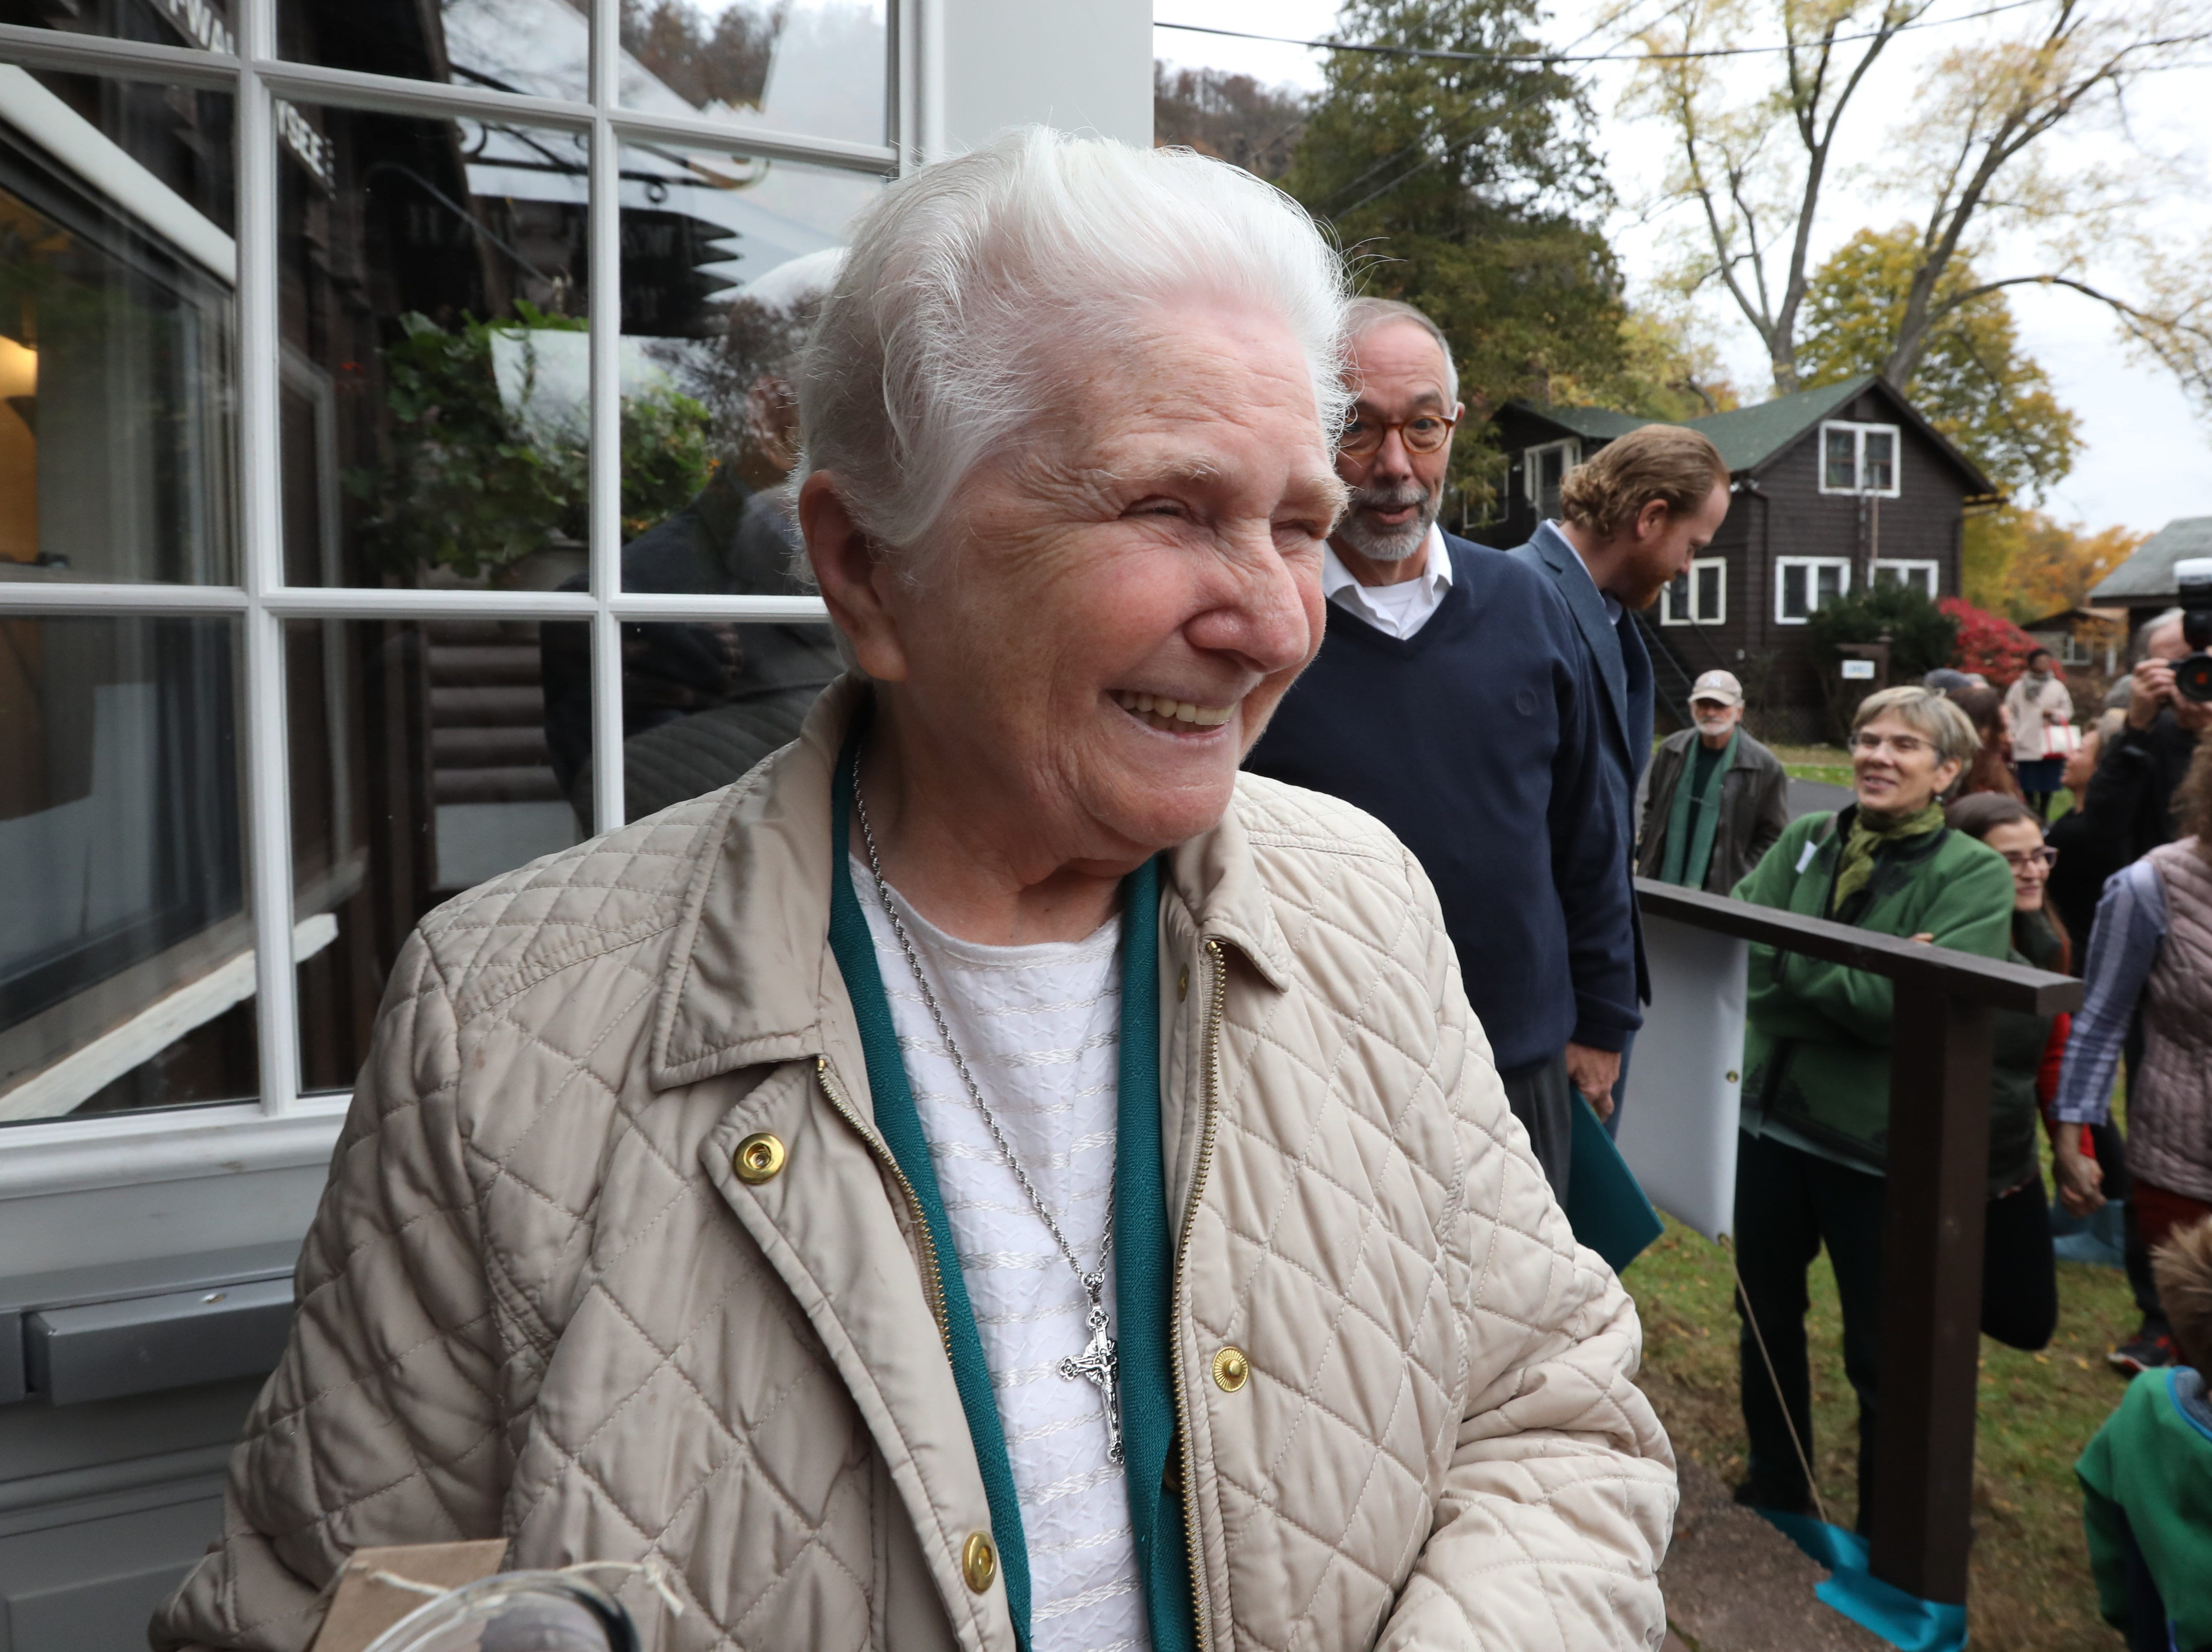 Sr. Eileen O'Farrell of Marydell at Strawtown Studio's new home at the Marydell Faith and Life Center in Nyack Nov. 9, 2018. Strawtown Studio runs arts and ecology programs for children and young adults.